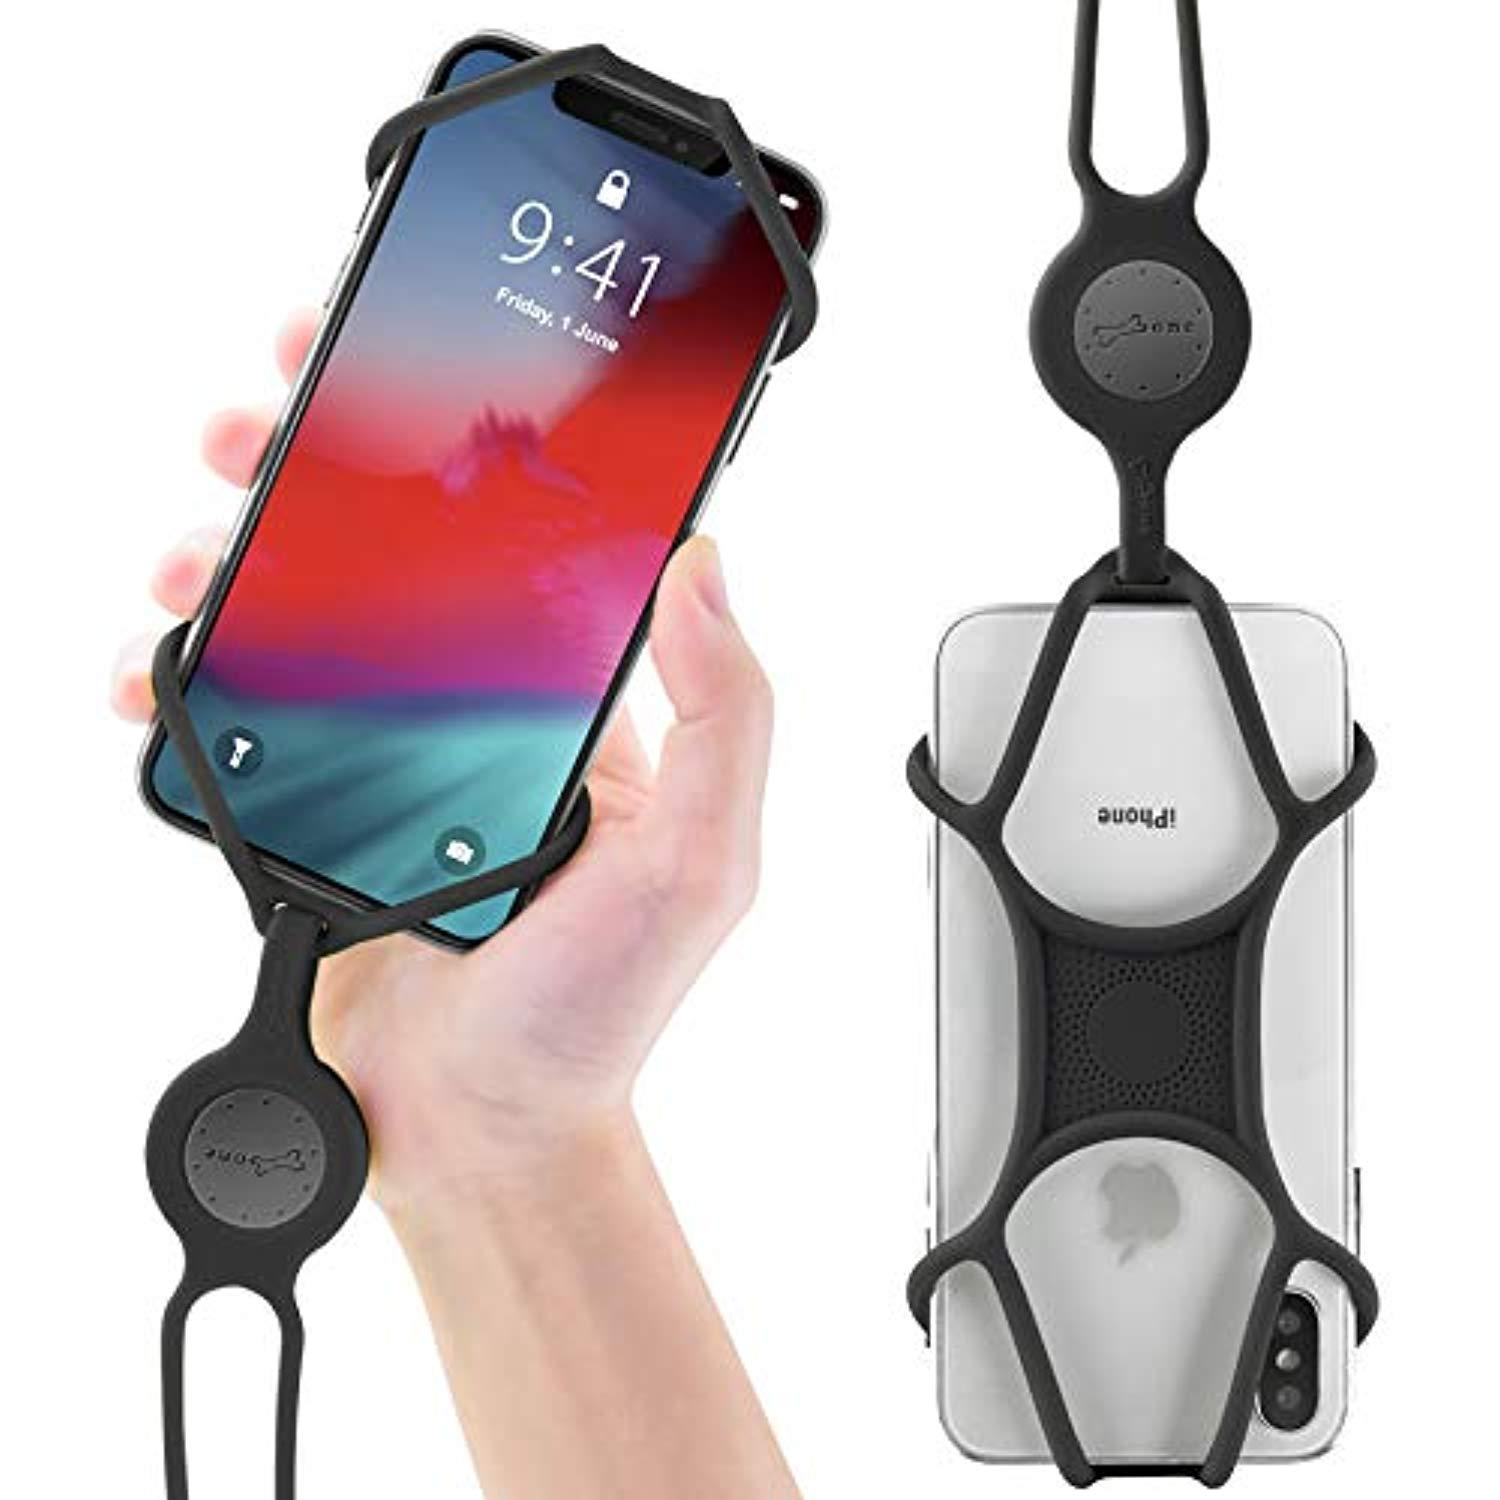 Galaxy Pixel Universal Phone Case Holder Silicone Necklace Strap for iPhone Moto /& More Cell Phone Lanyard Note